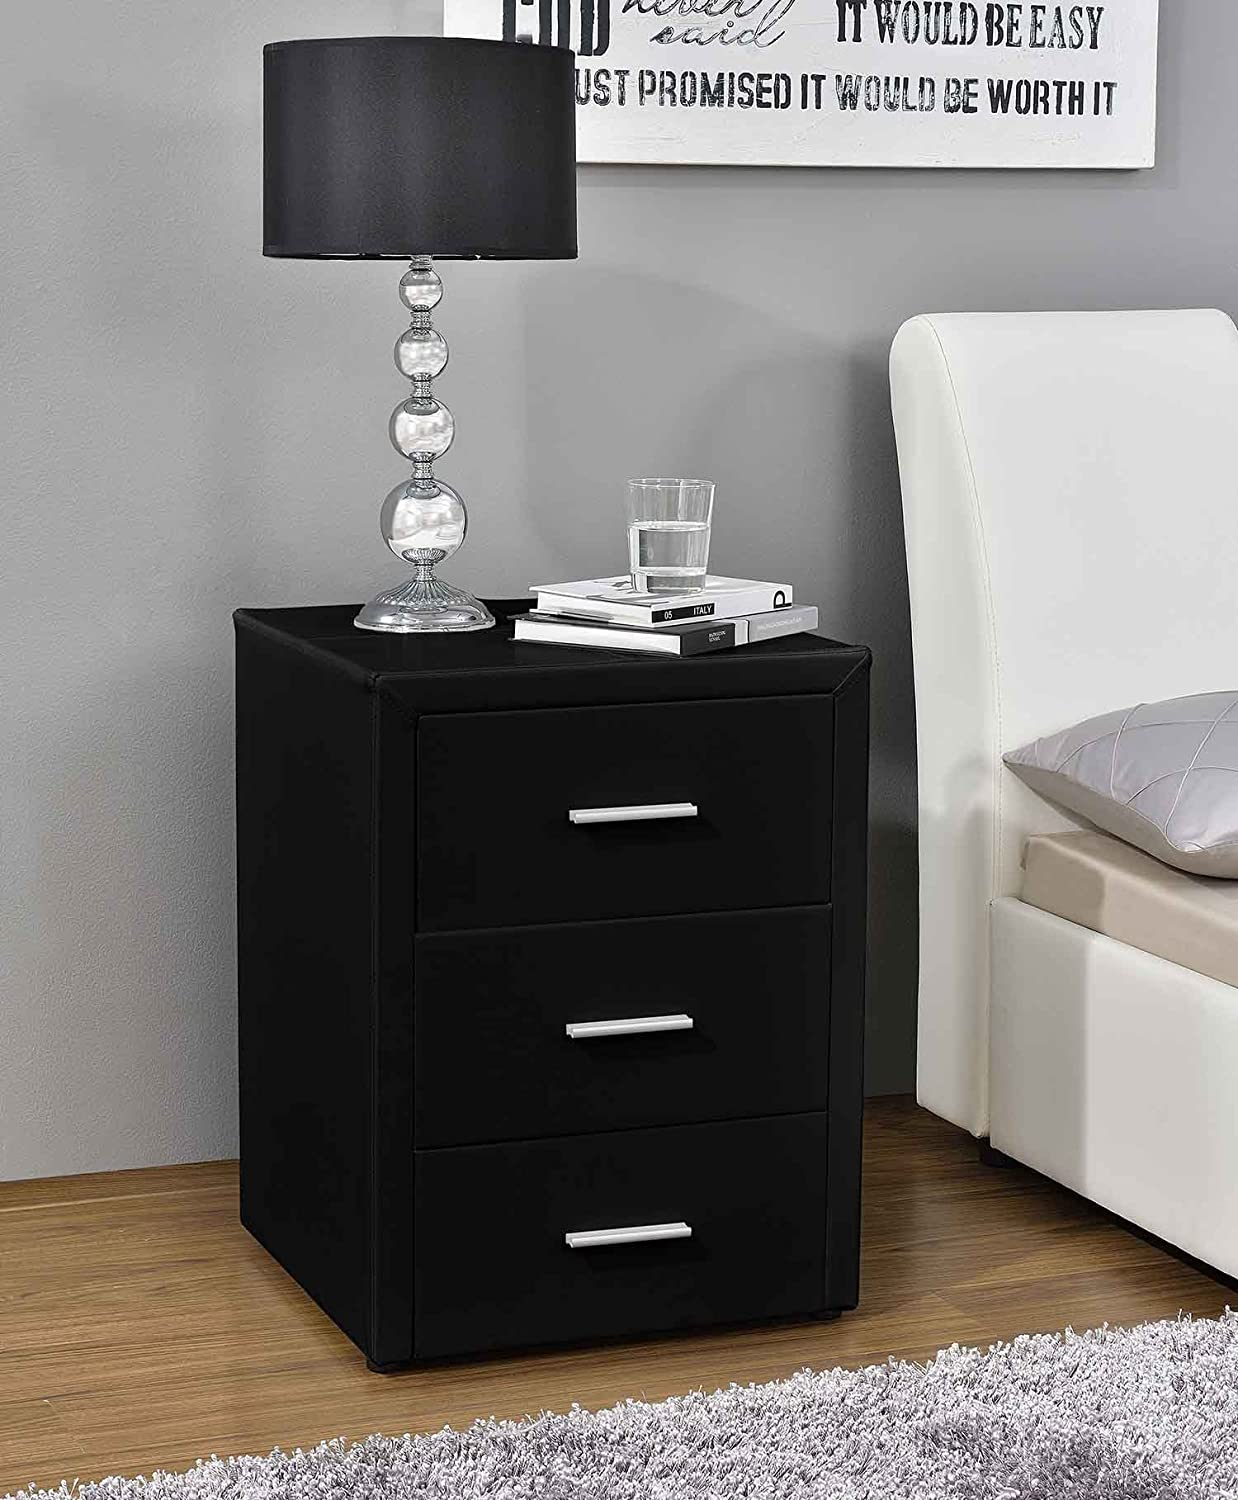 excellent milan nuit support tiroirs table de chevet en simili cuir en noir marron ou blanc par. Black Bedroom Furniture Sets. Home Design Ideas